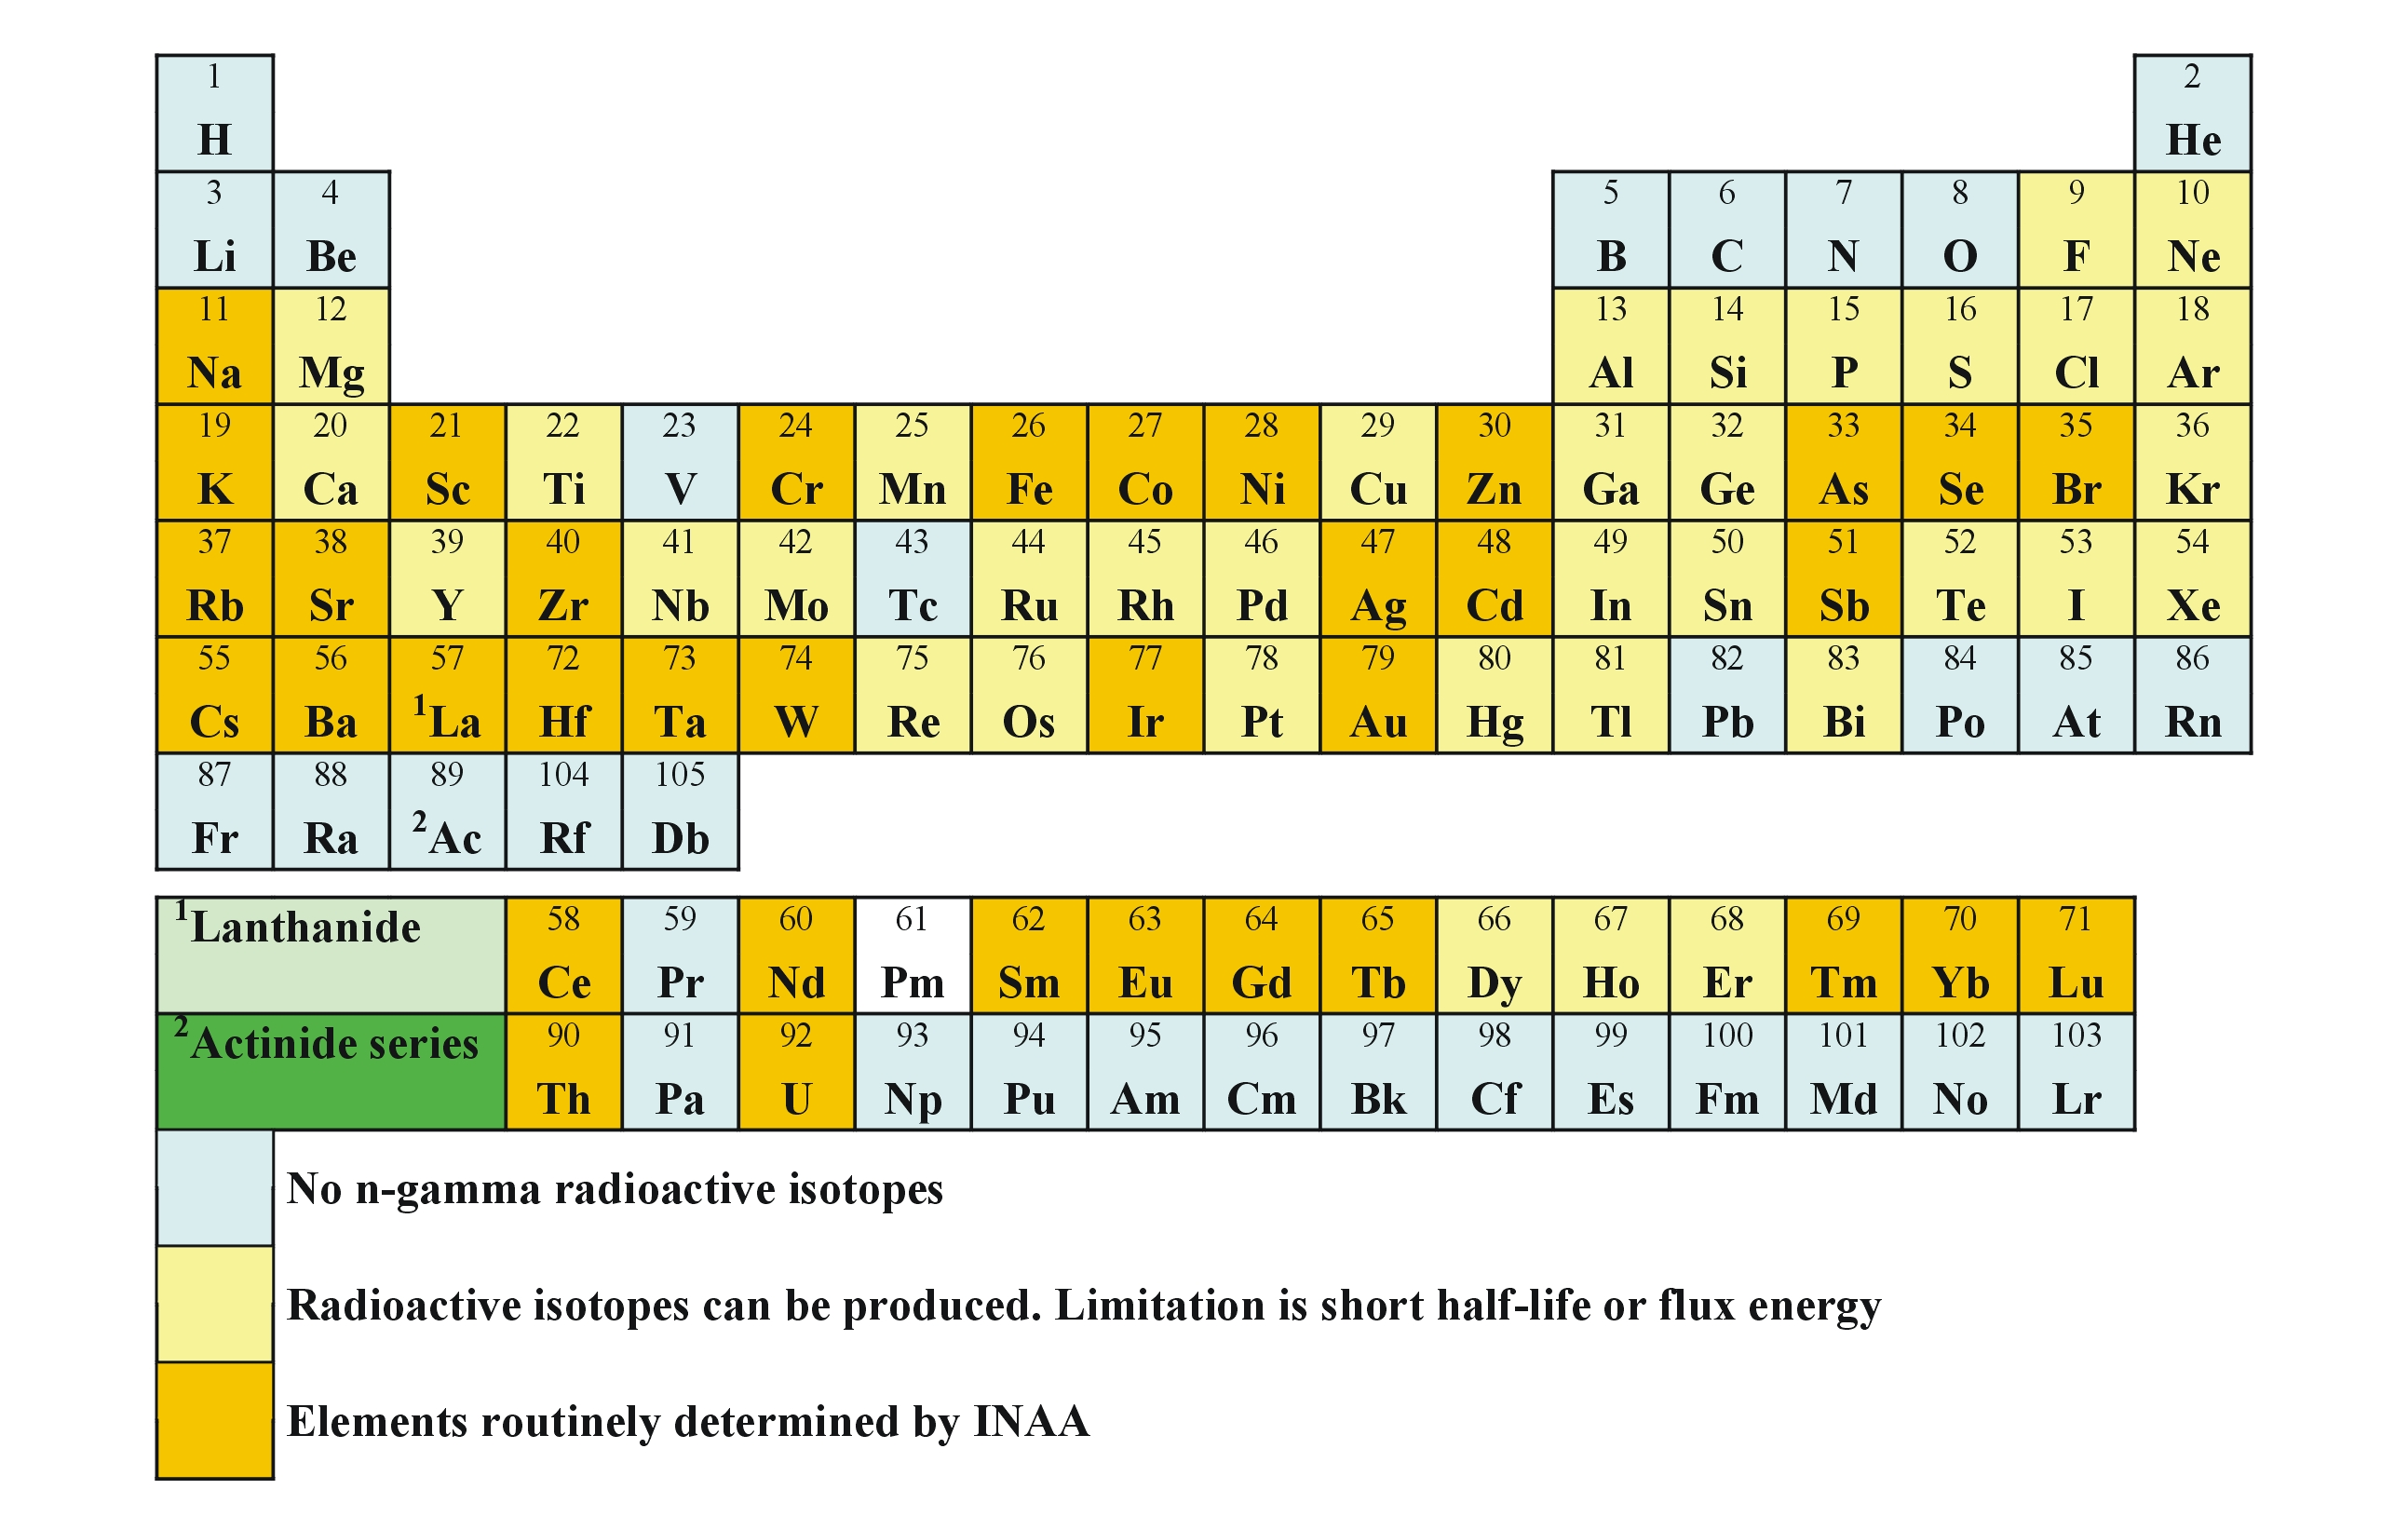 New periodic table of elements gases at room temperature periodic temperature periodic gases of room elements table at inaa table periodic urtaz Images